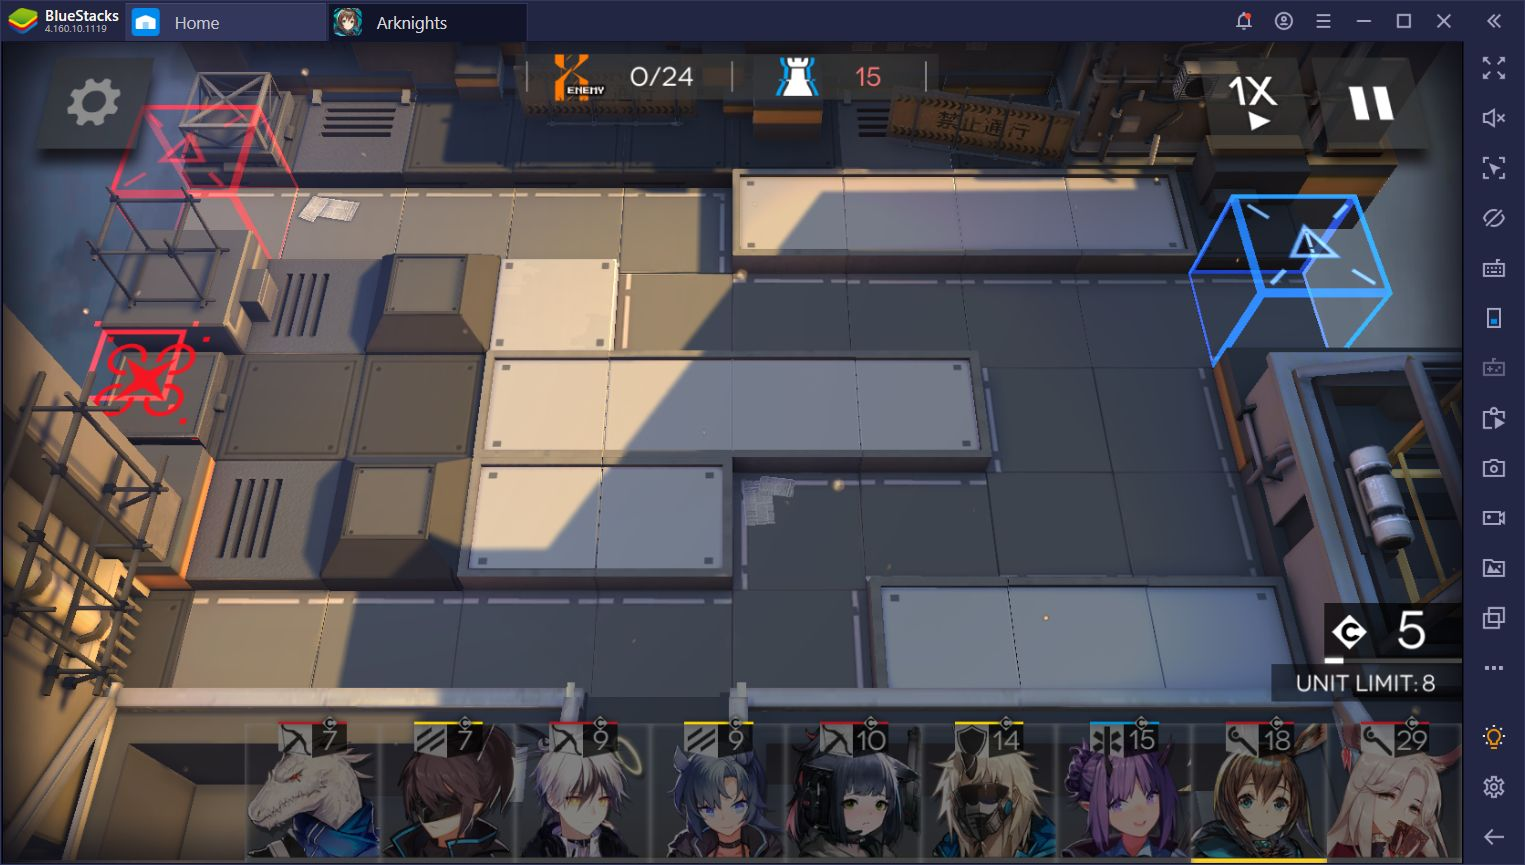 Arknights on PC - How to Defend Your Lanes With BlueStacks